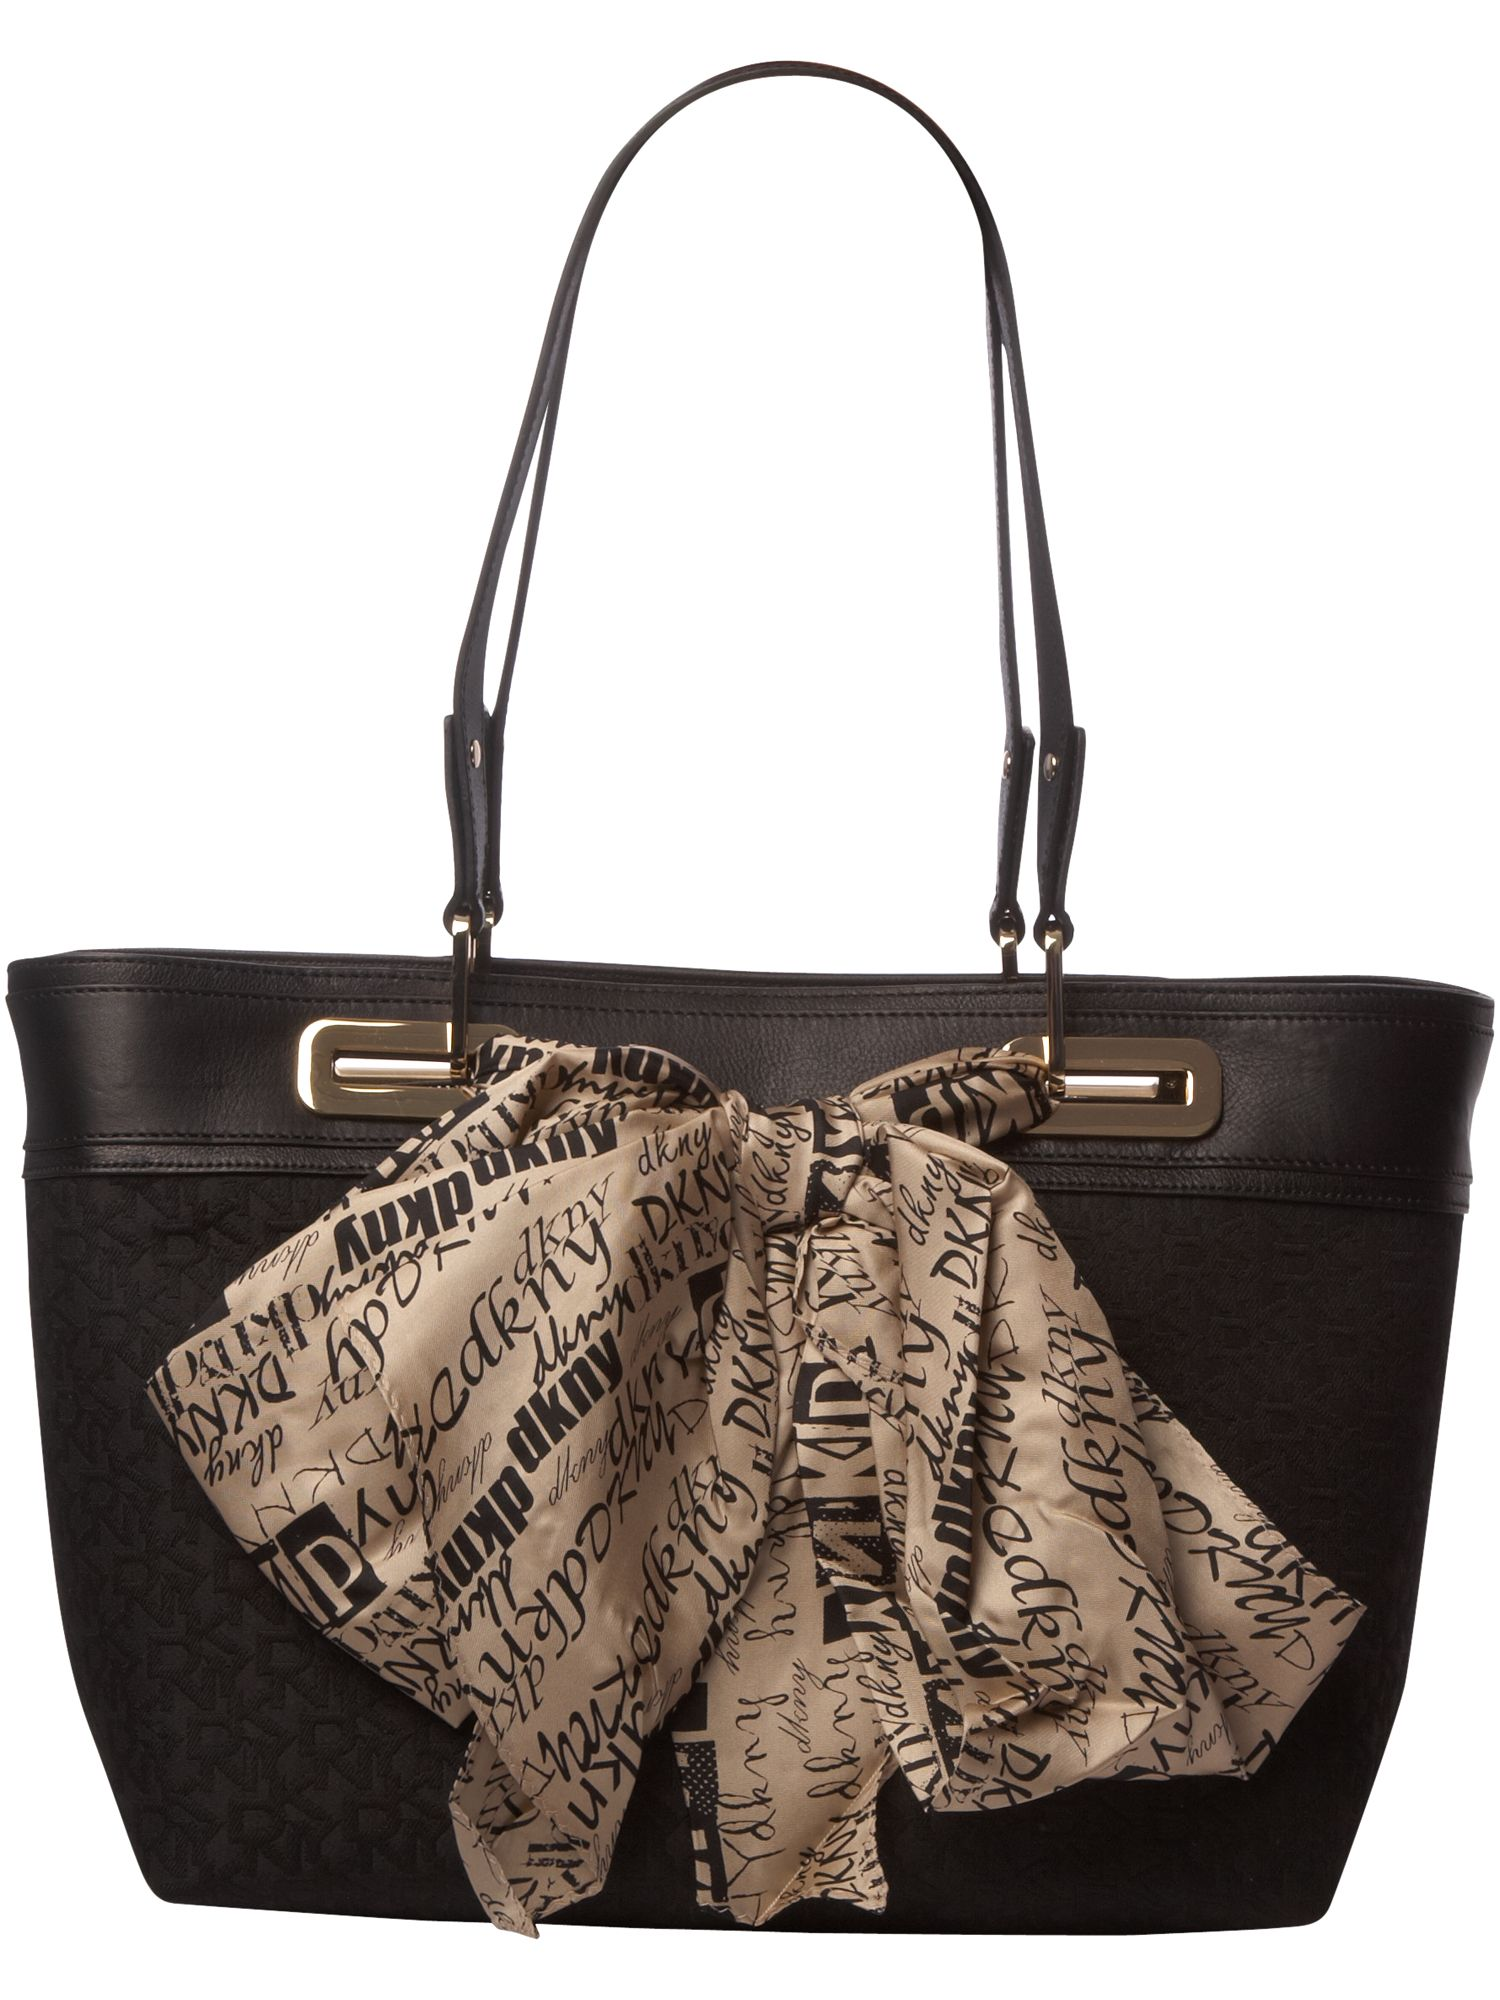 DKNY Scarf Bag Town and Country large nylon tote product image